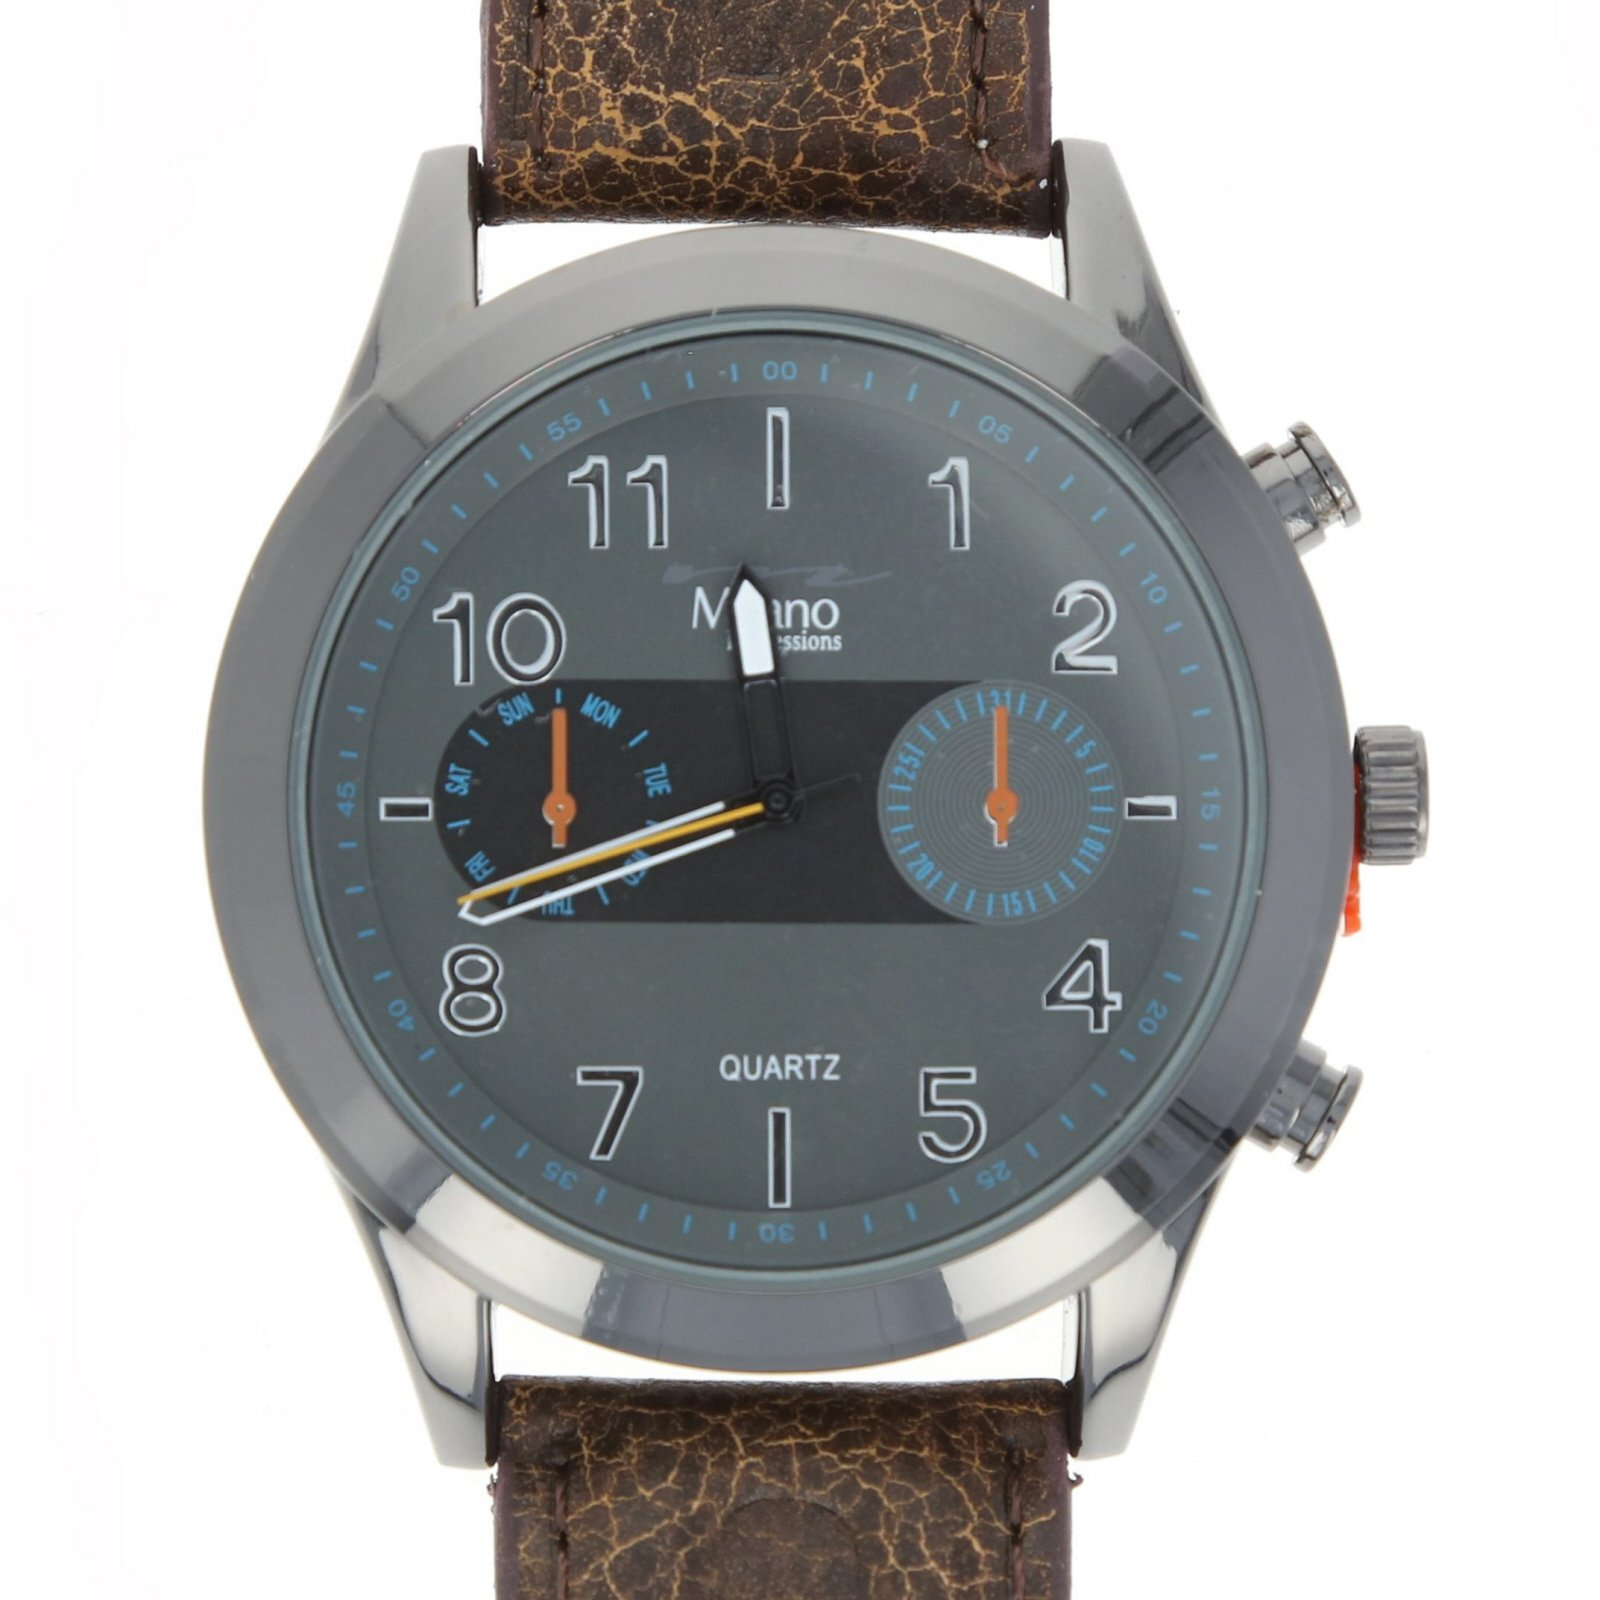 Milano Genesis Mens Watch Leather Band Quartz - Brown